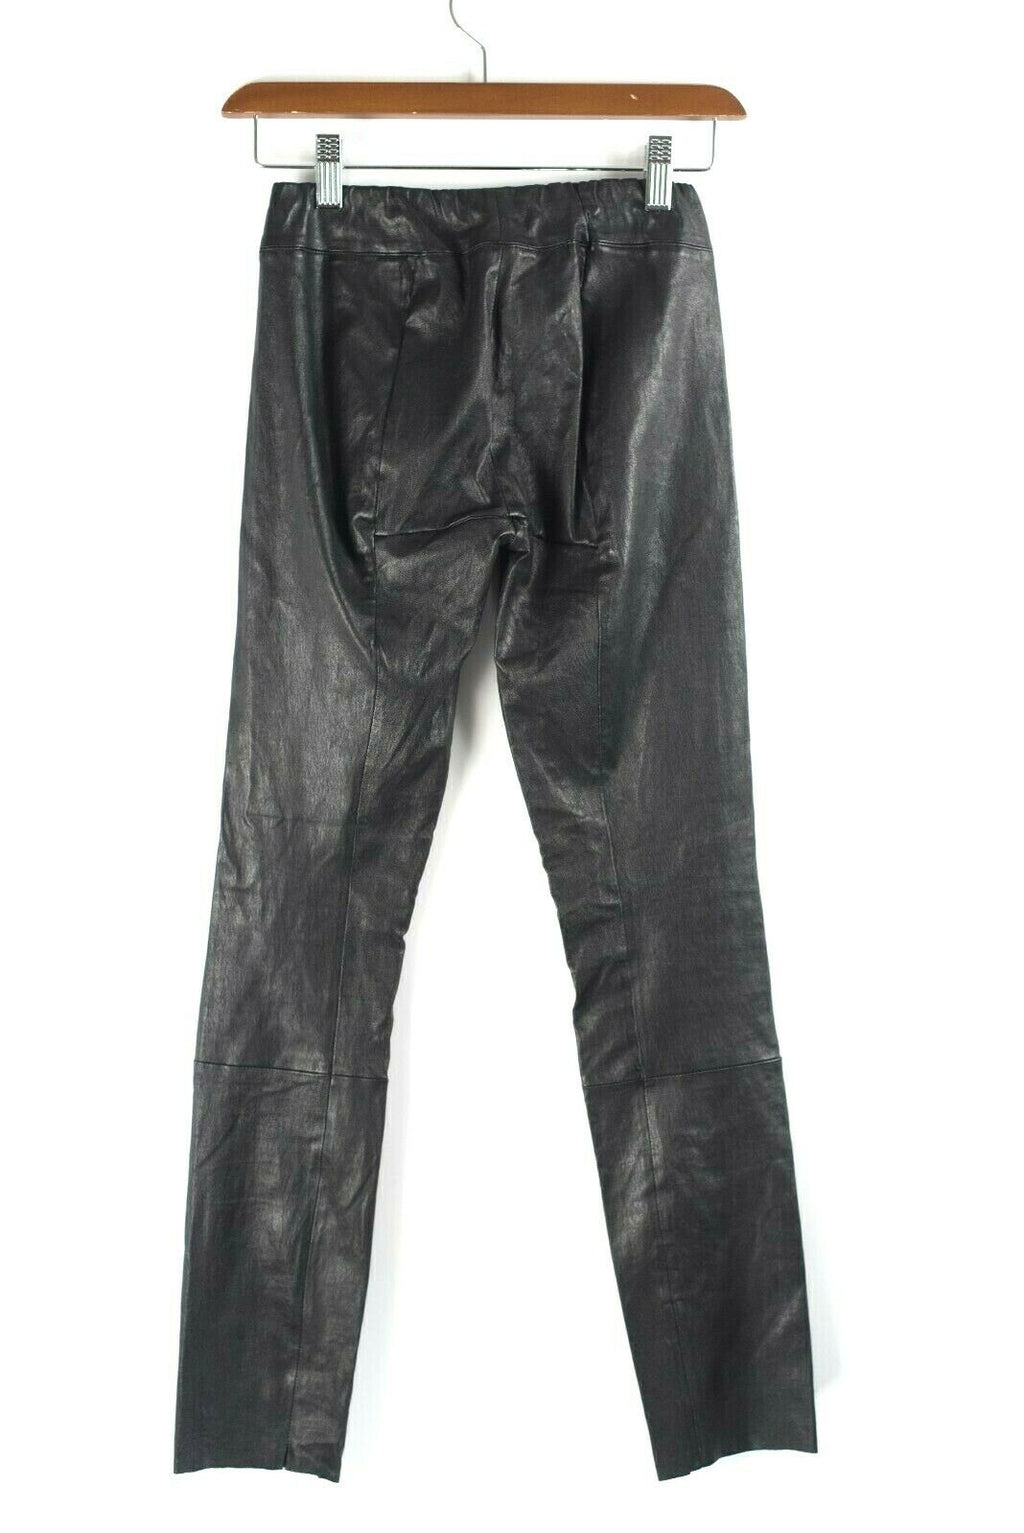 The Row Womens Size XS Black Pants Skinny Moto Stretch Leather Leggings $1,950